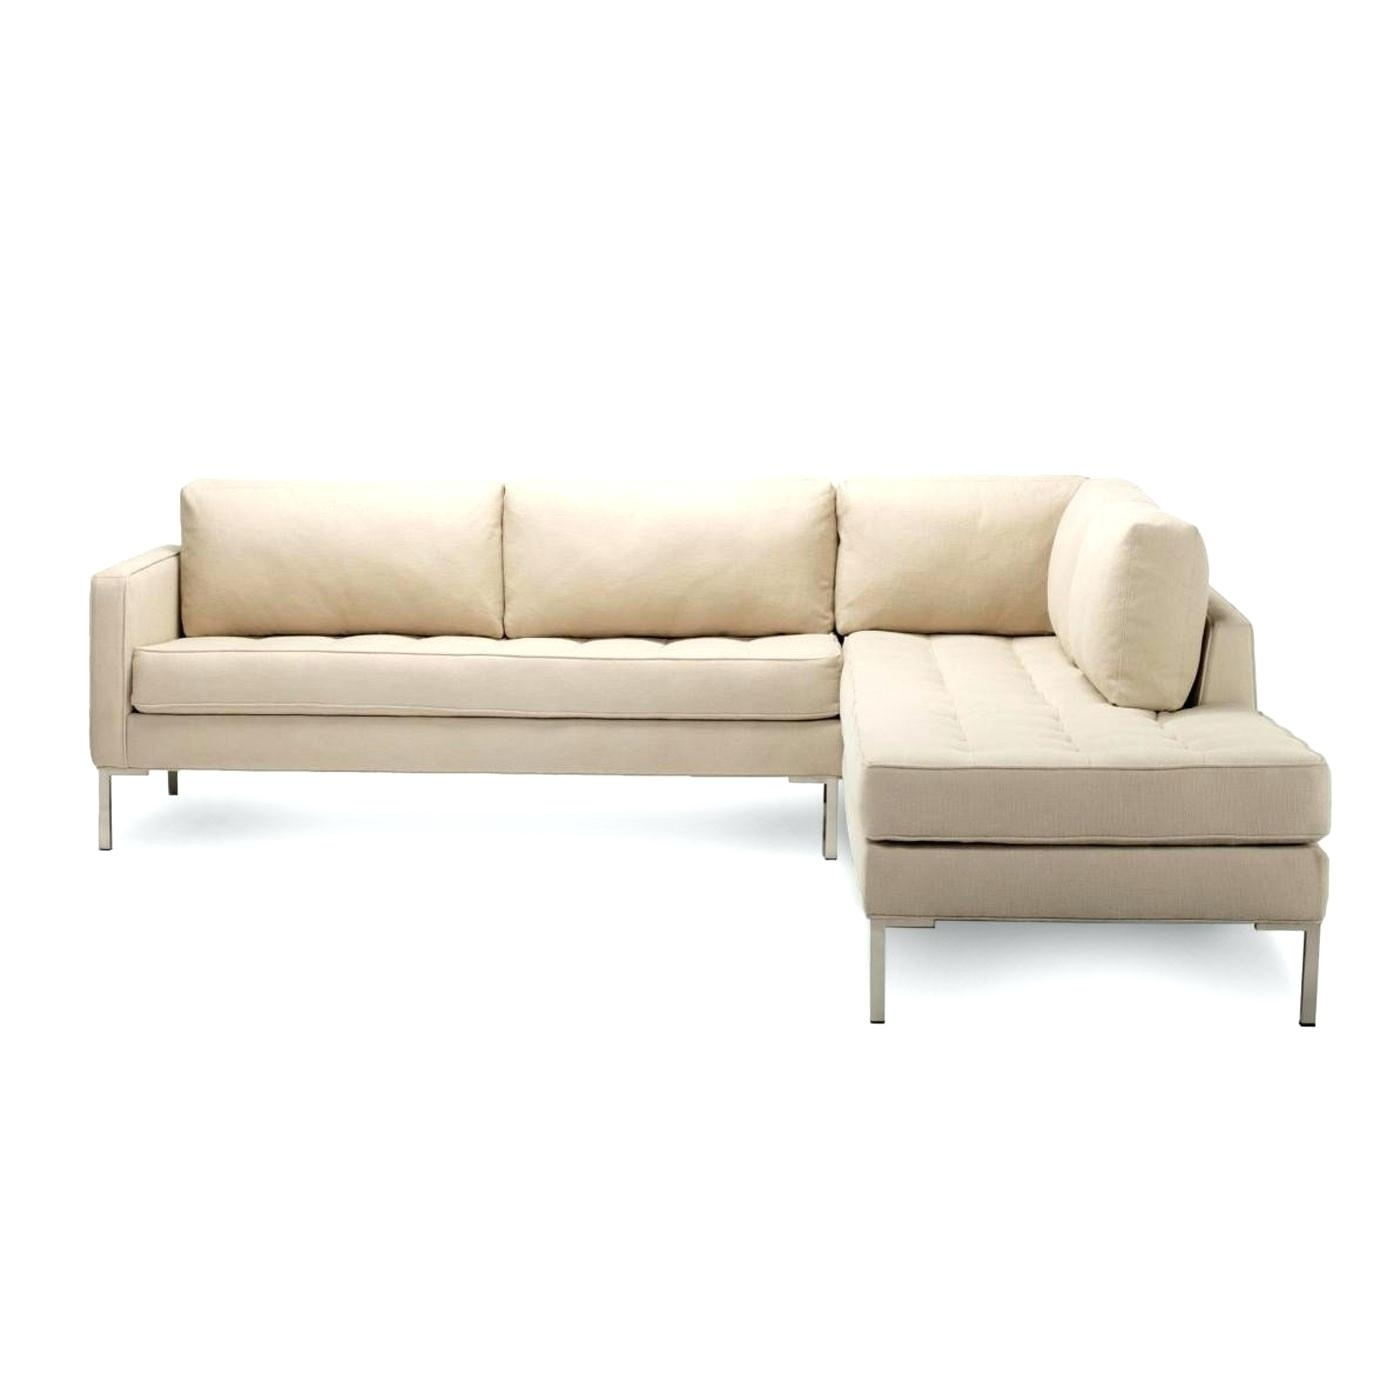 Contemporary Sectional Sofas Sofa Otto Furniture Decor Couches Small in Contemporary Sectional Sofas (Image 6 of 15)